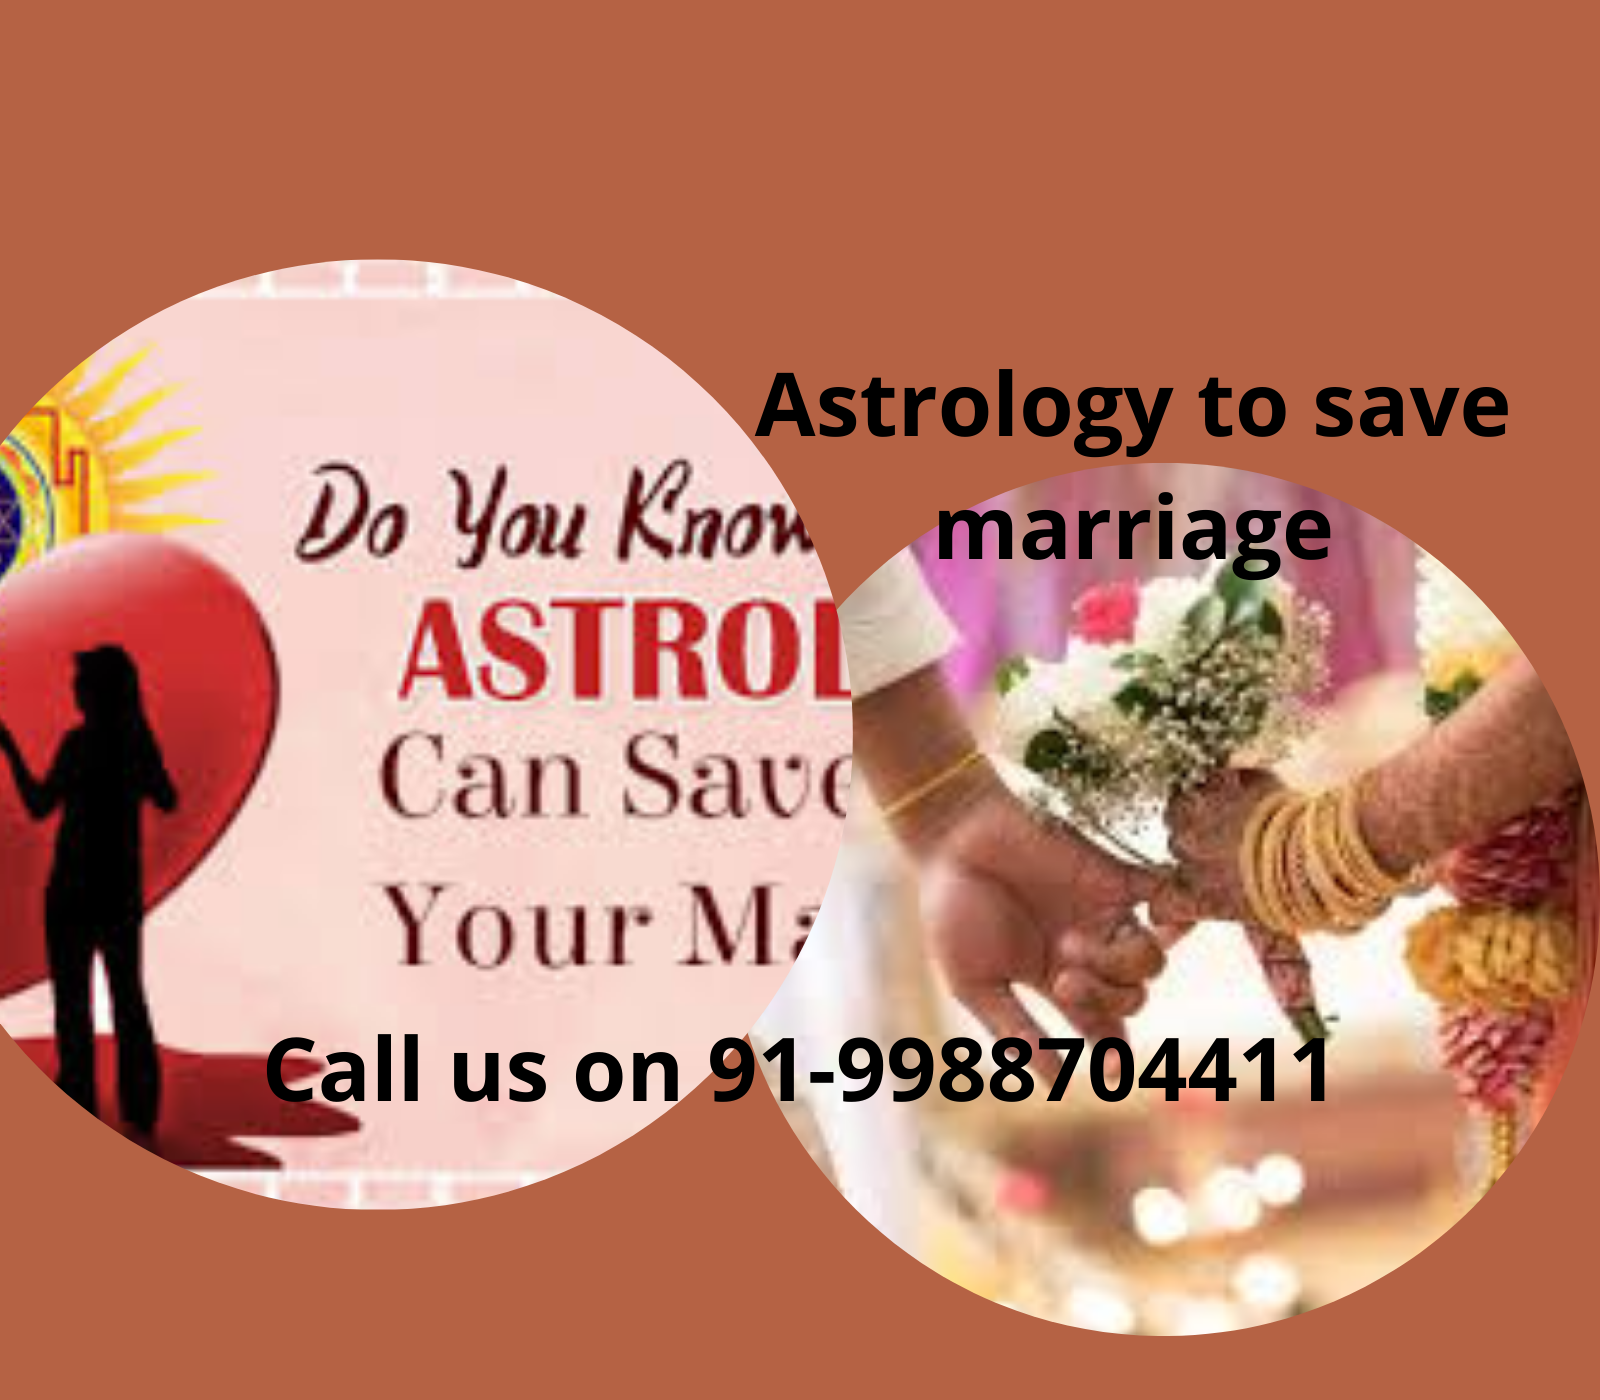 Astrology to save marriage